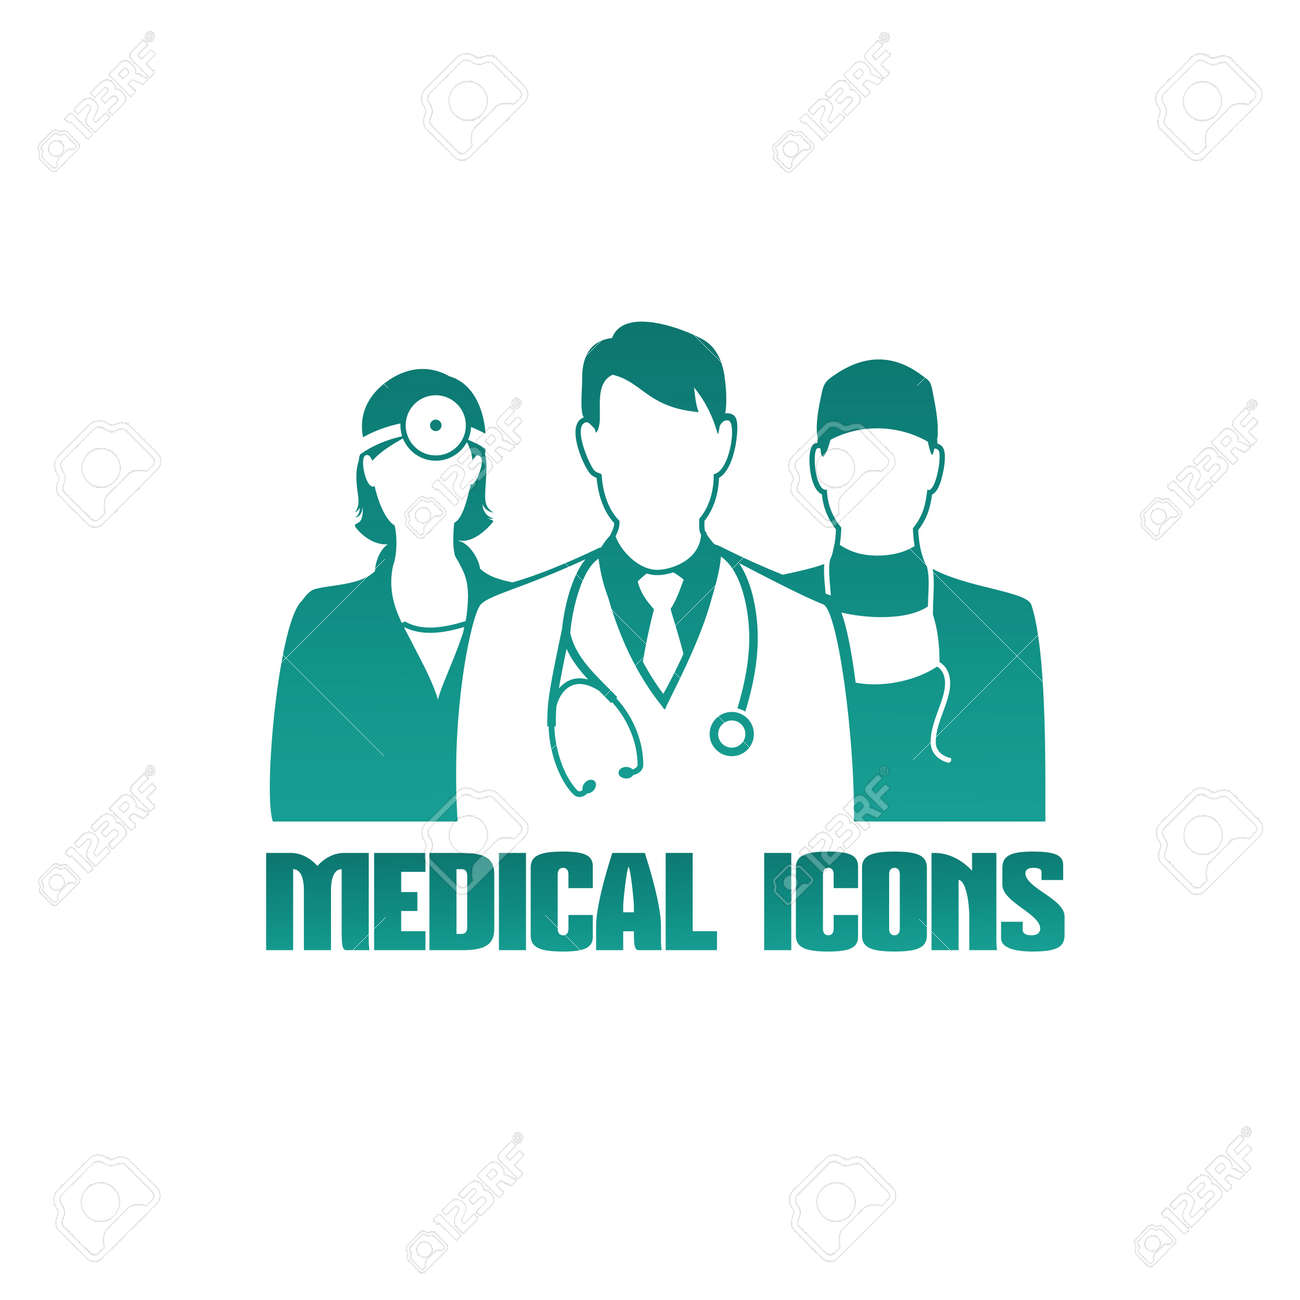 Medical icon with 3 different doctors as therapist, surgeon and otolaryngologist - 29854424